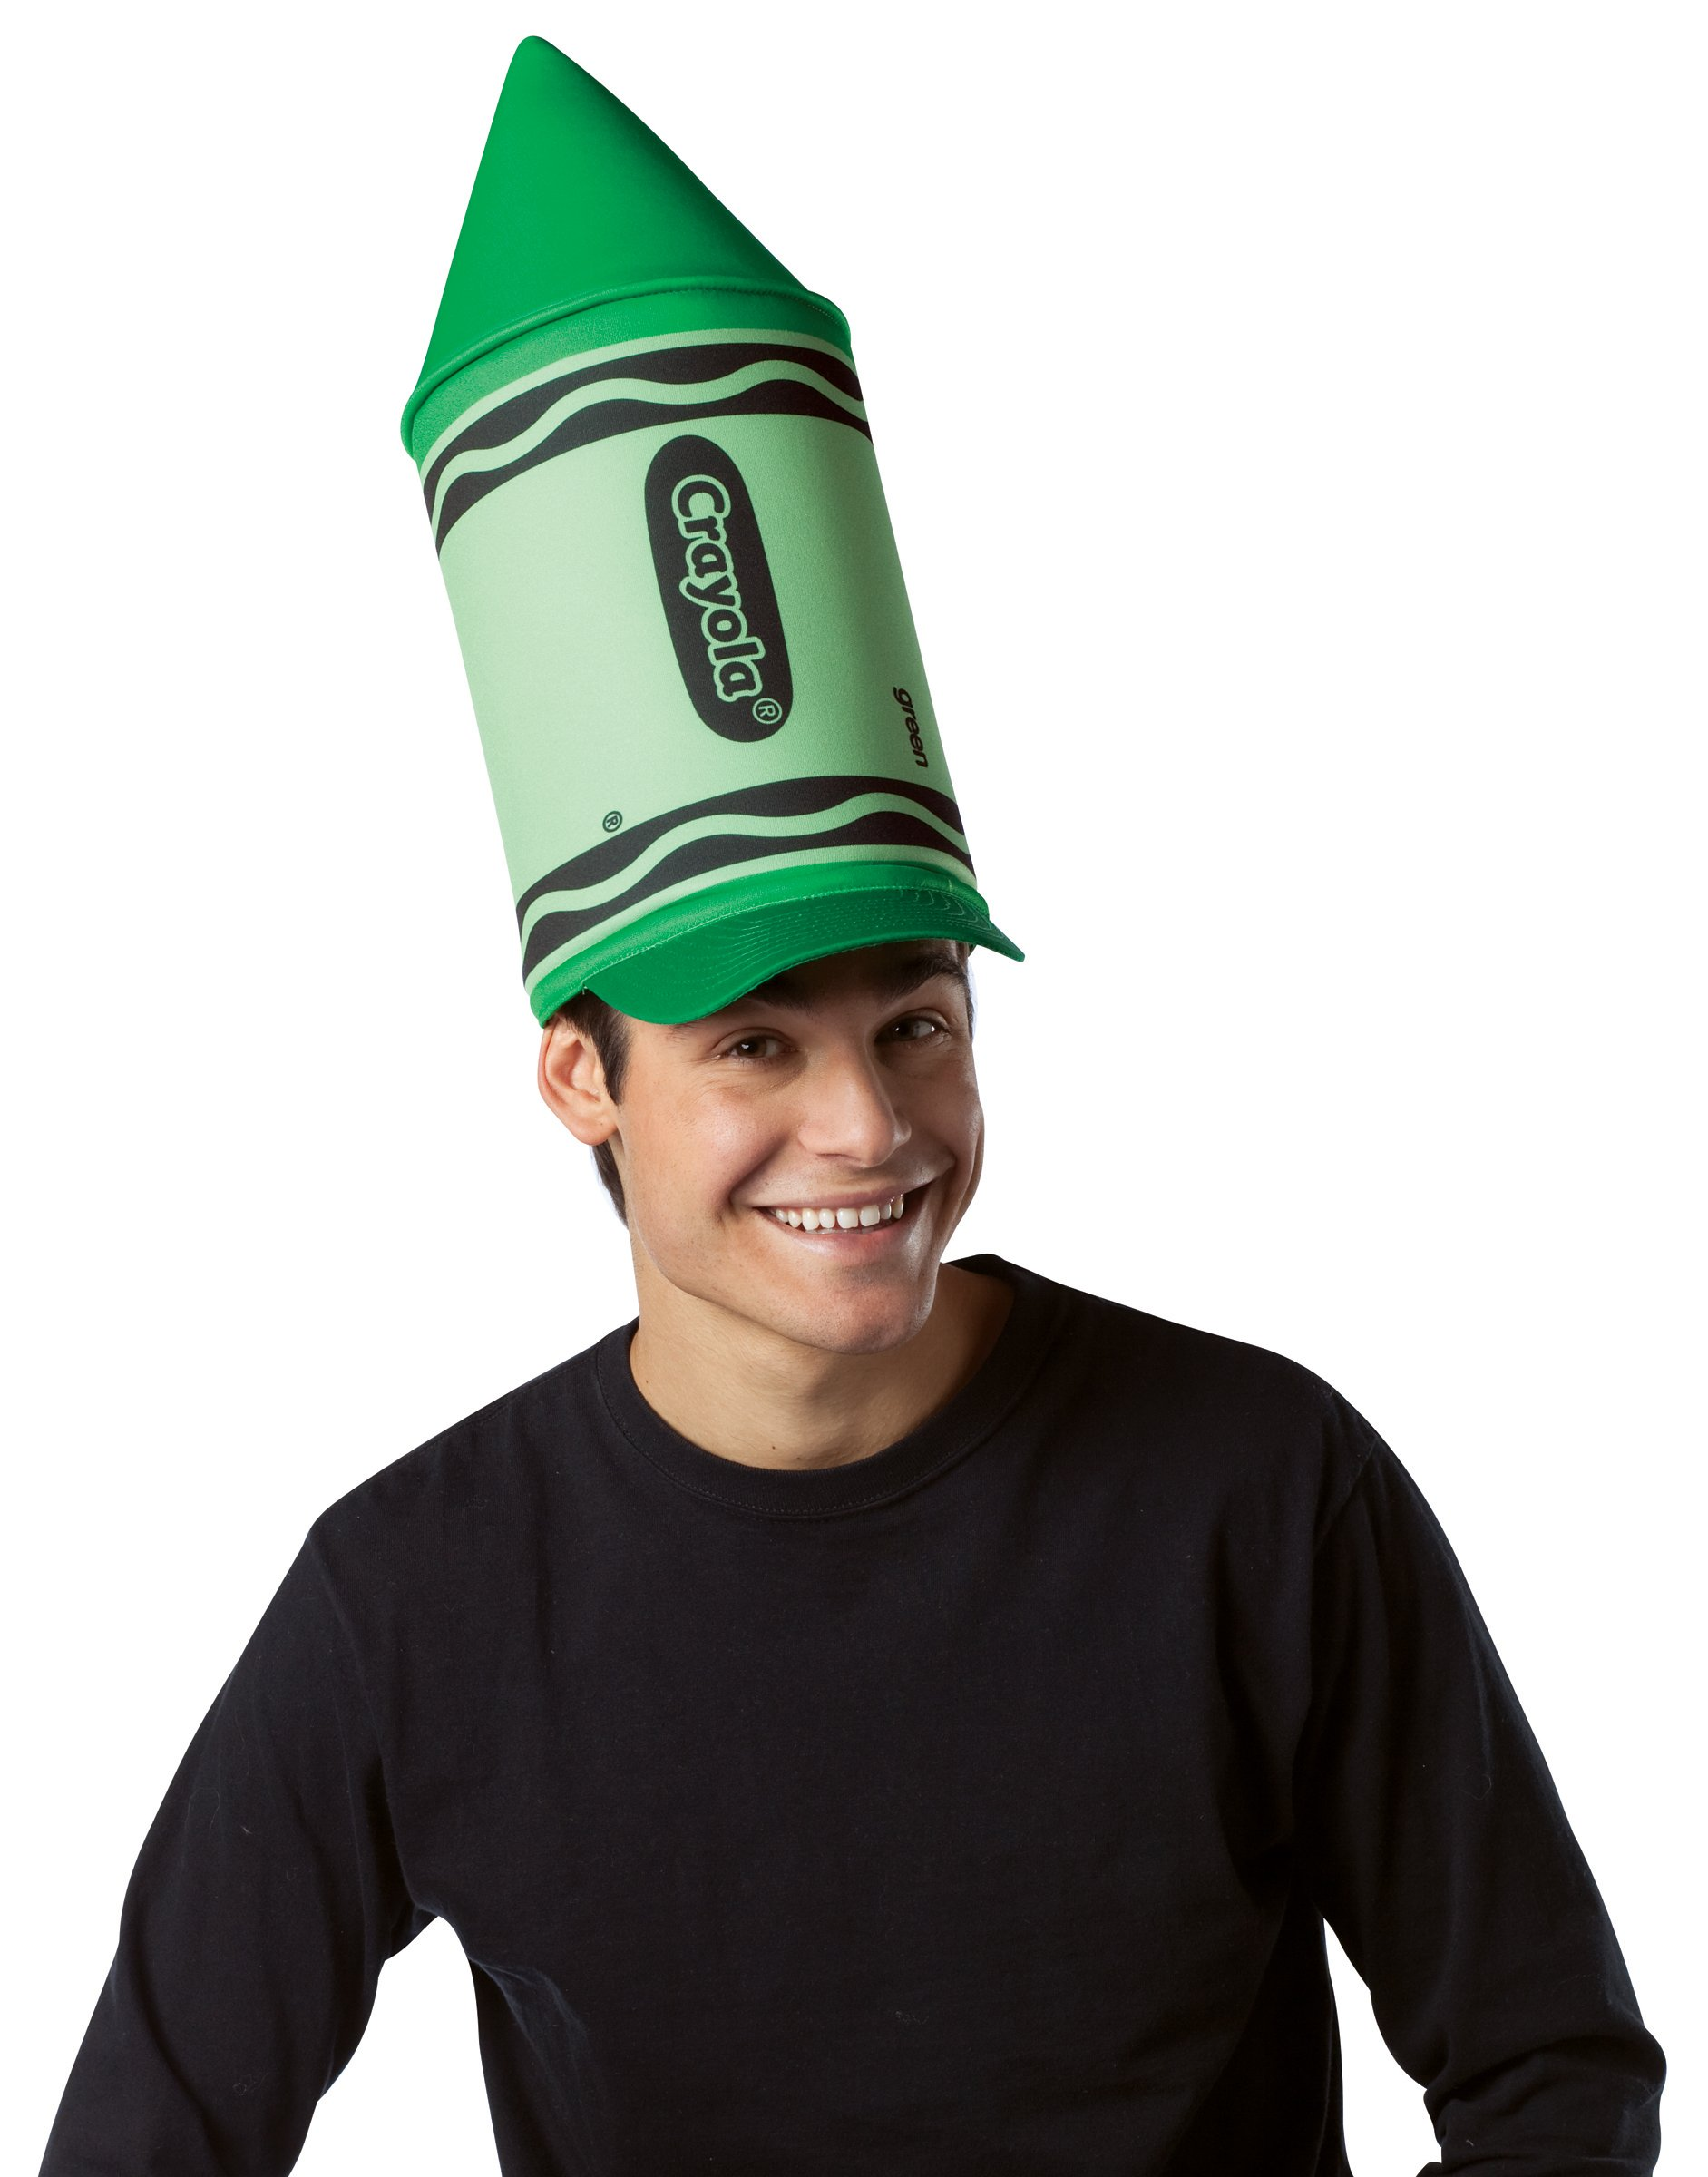 Crayola Green Crayon Hat (Adult)